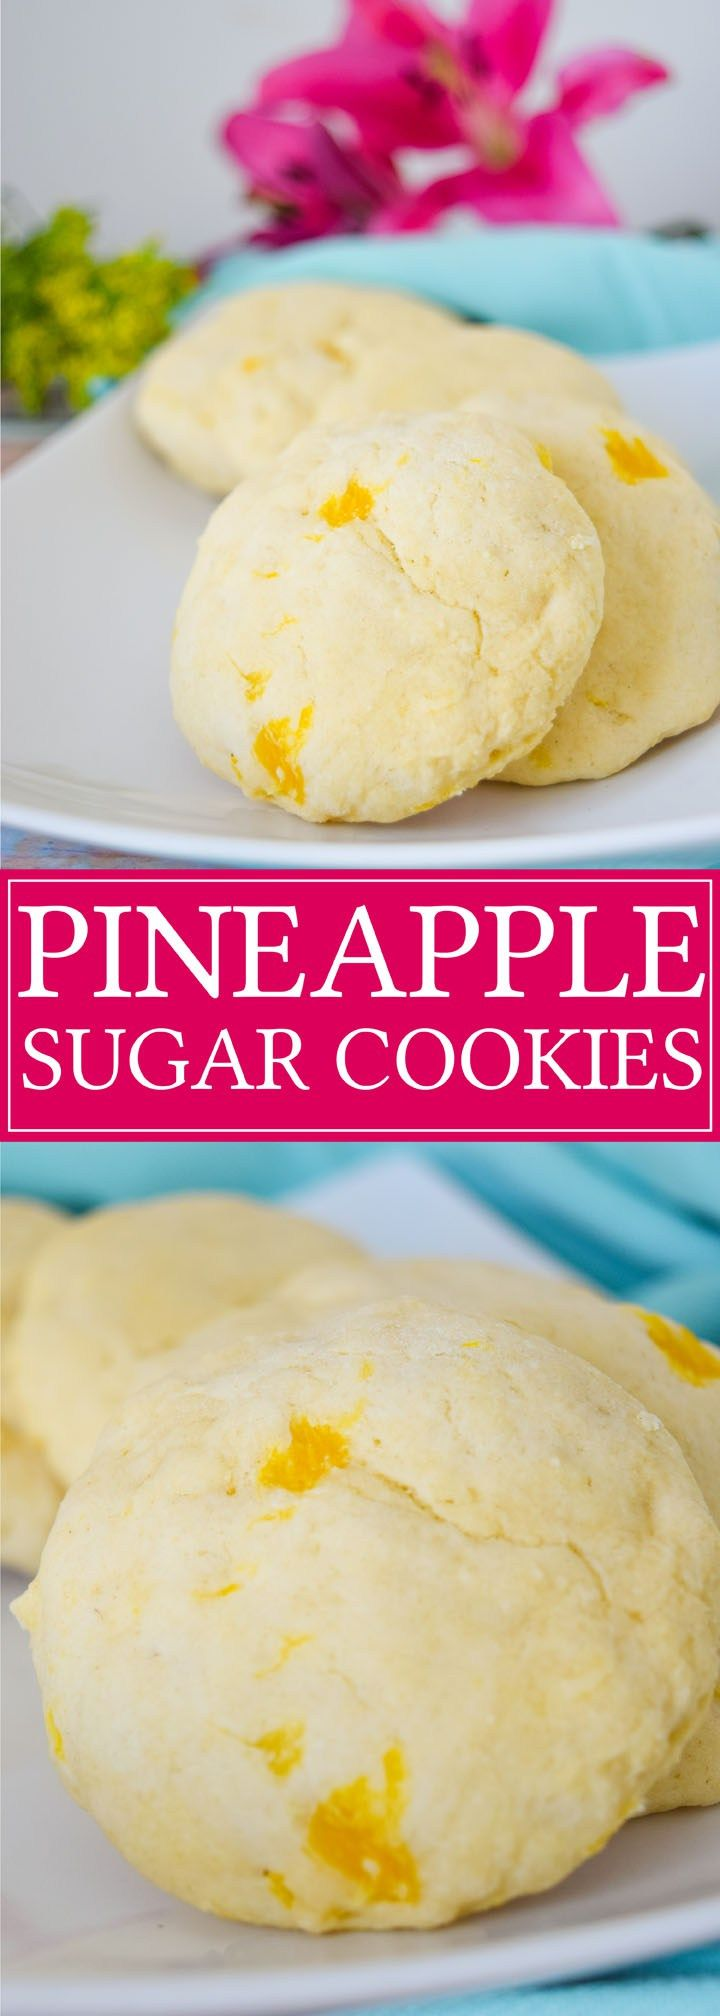 Pineapple Sugar Cookies: A fun alternative to regular sugar cookies with a hint of pineapple!